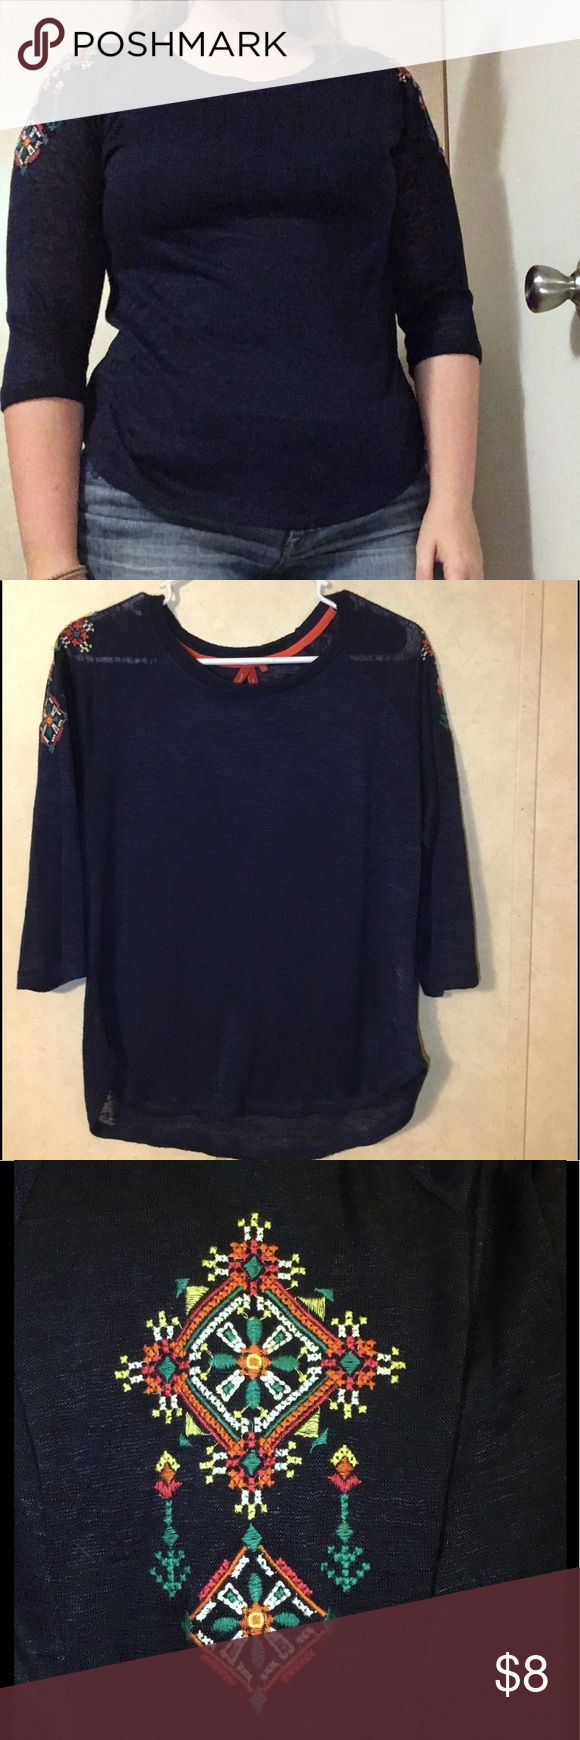 Red Camel navy sheer top 3/4 sleeves and multi-colored embellishments on shoulder. Could fit between M/L/XL. Only worn once! Red Camel Tops Blouses